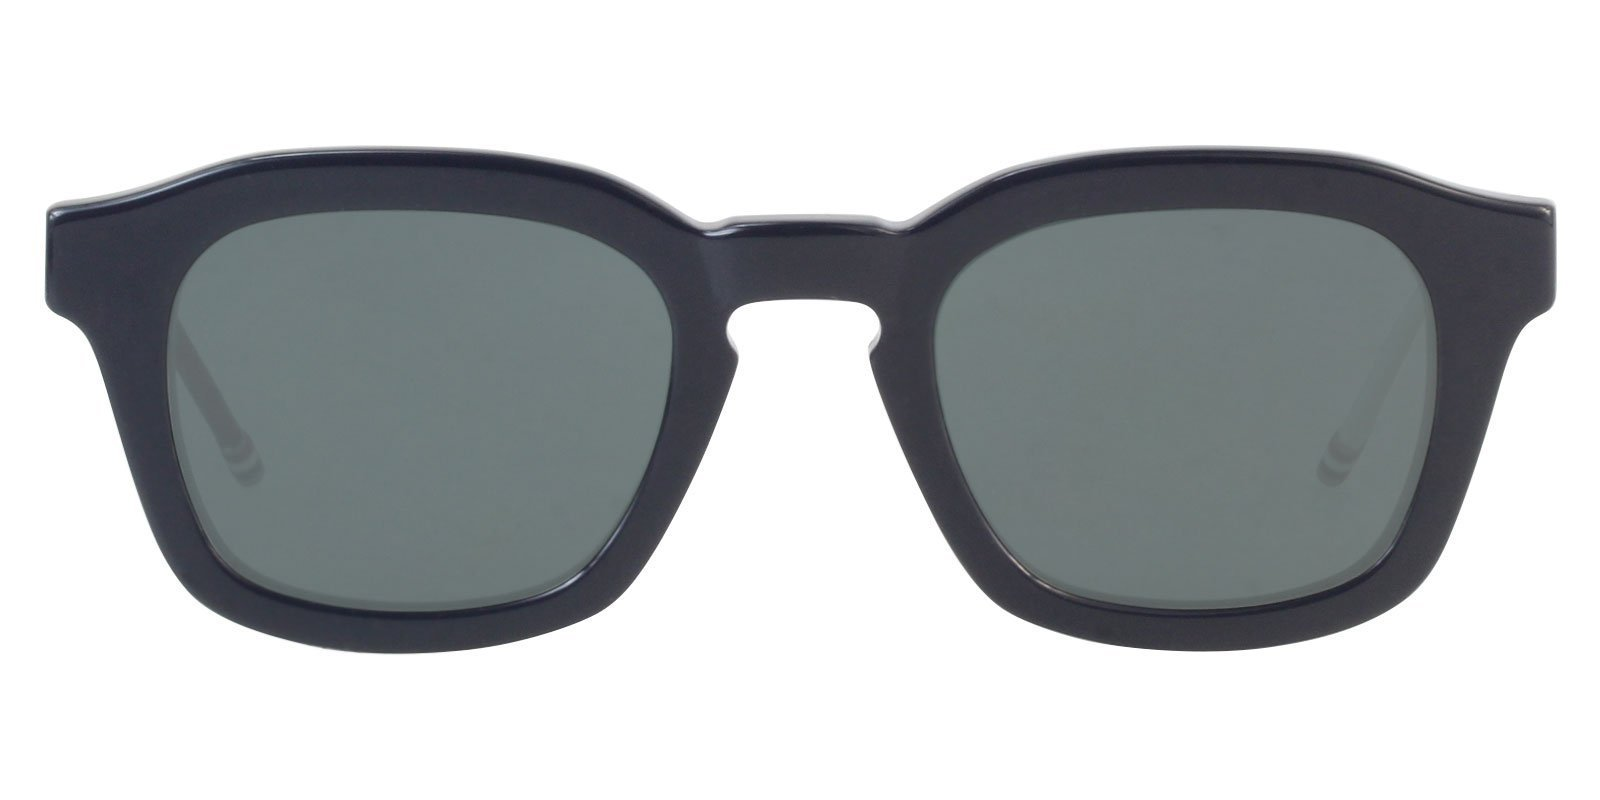 Thom Browne TB-412 LTD Blue / Gray Lens Mirror Eyeglasses-Eyeglasses-Designer Eyes